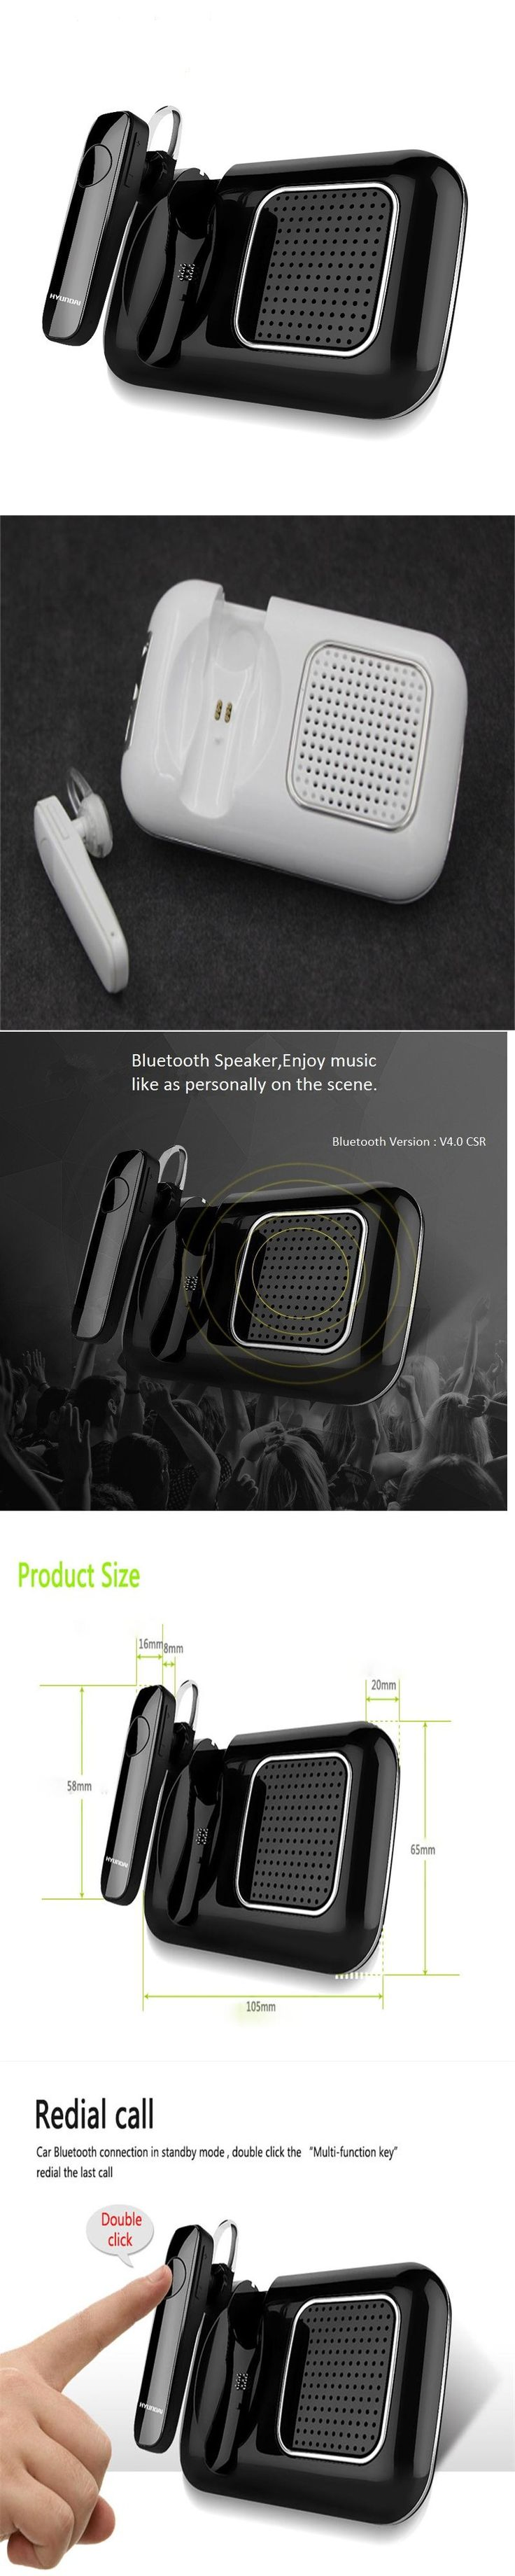 2017 New Bluetooth Car Kit Smart Car Bluetooth Handsfree Speaker Earphone For IOS Android Phone Sun Visor Portable Car Audio